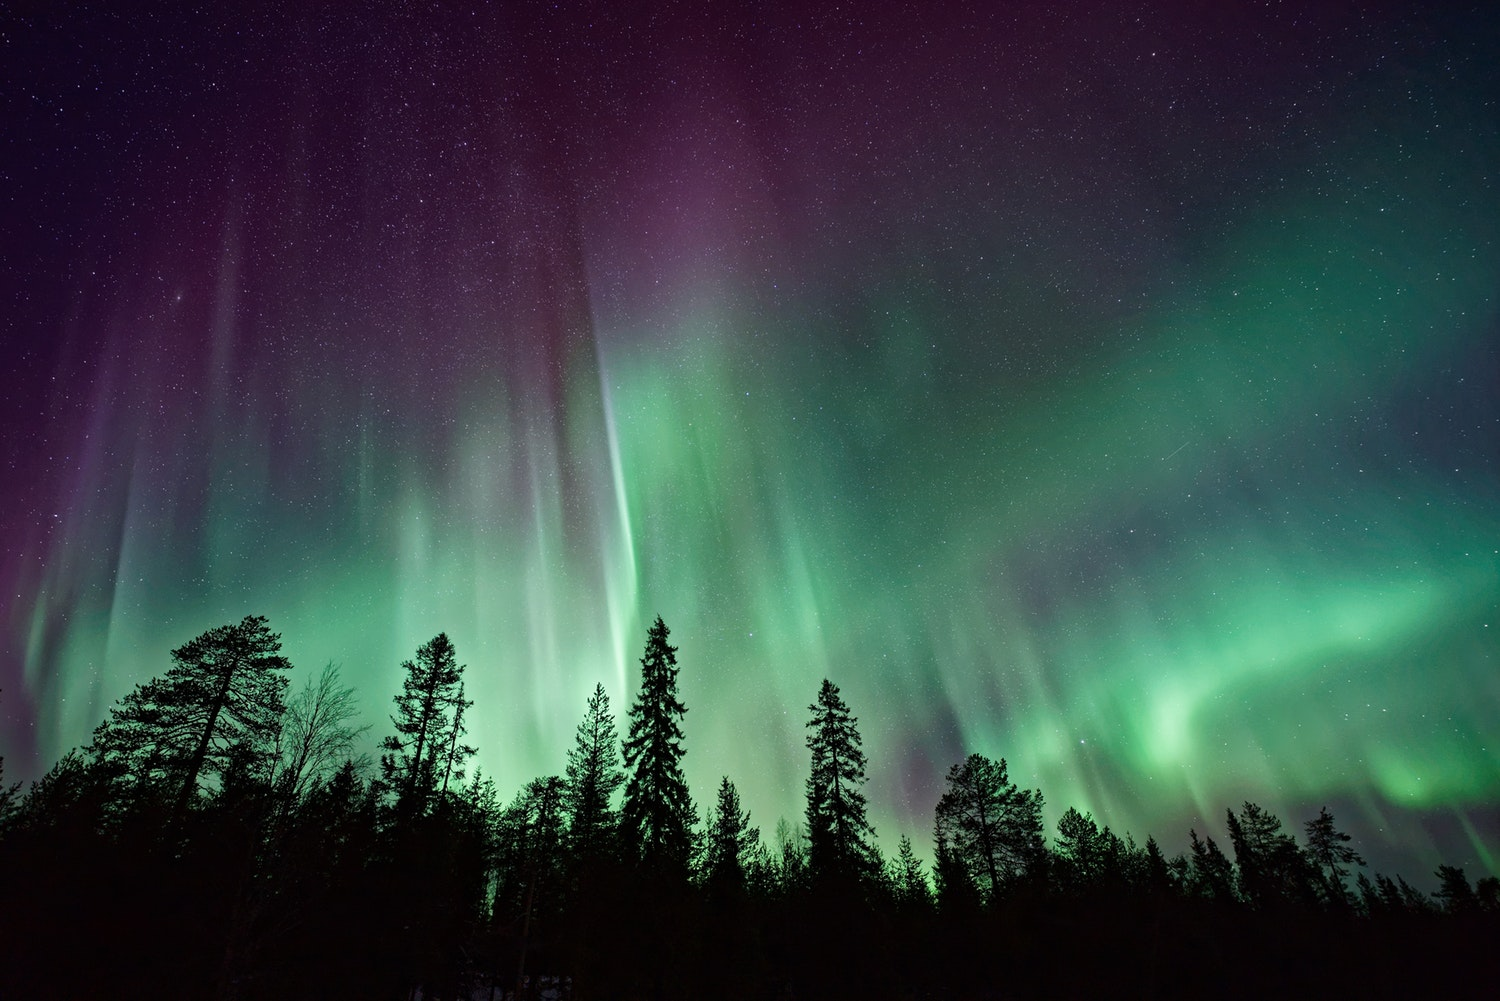 the northern lights - places to go for new year's eve - northern lights - luxury vacations - luxury vacation - alaska - nature